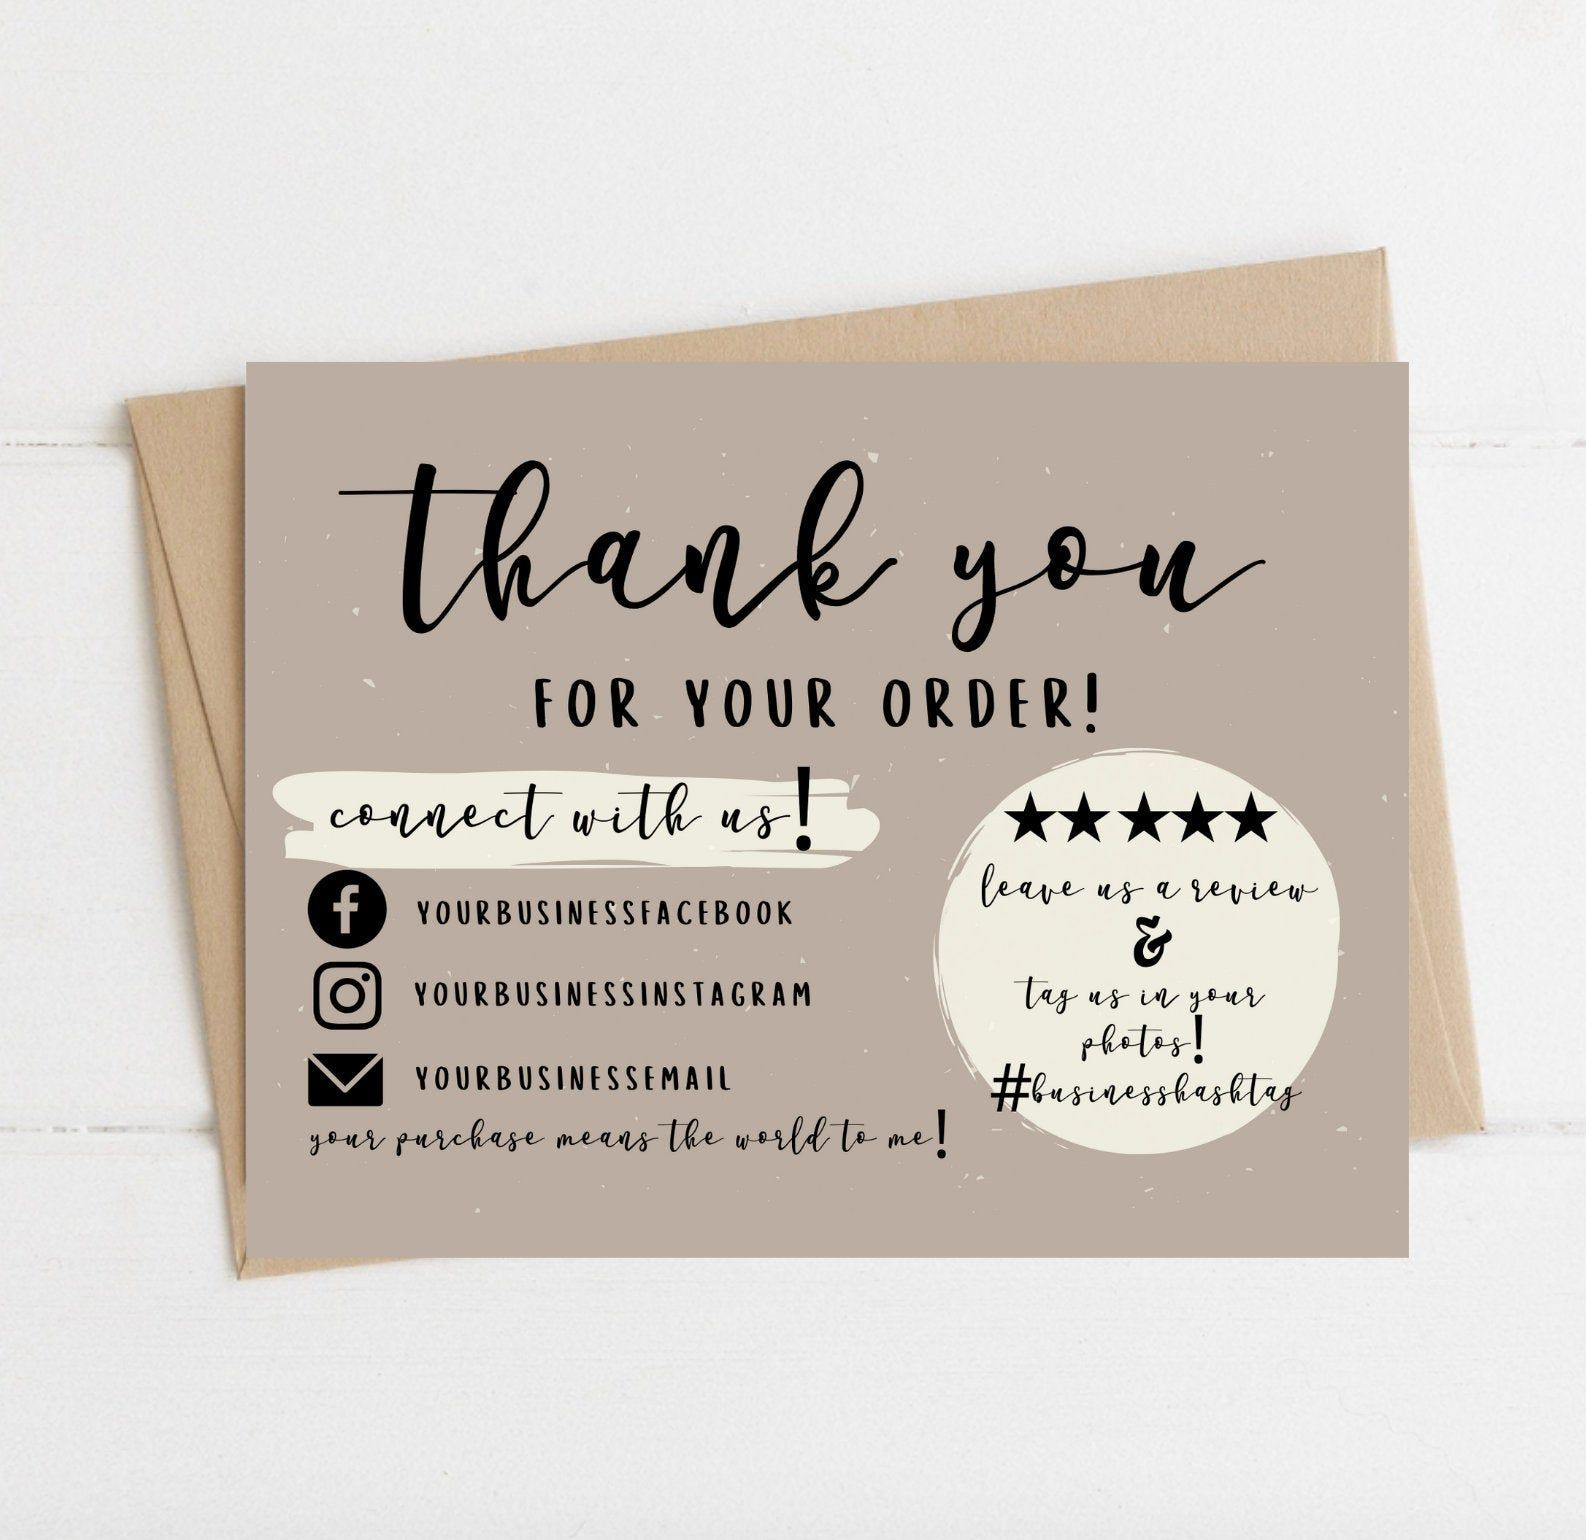 007 Unbelievable Thank You Note Template Pdf High Definition  Card Free Sample Letter For Donation Of GoodFull